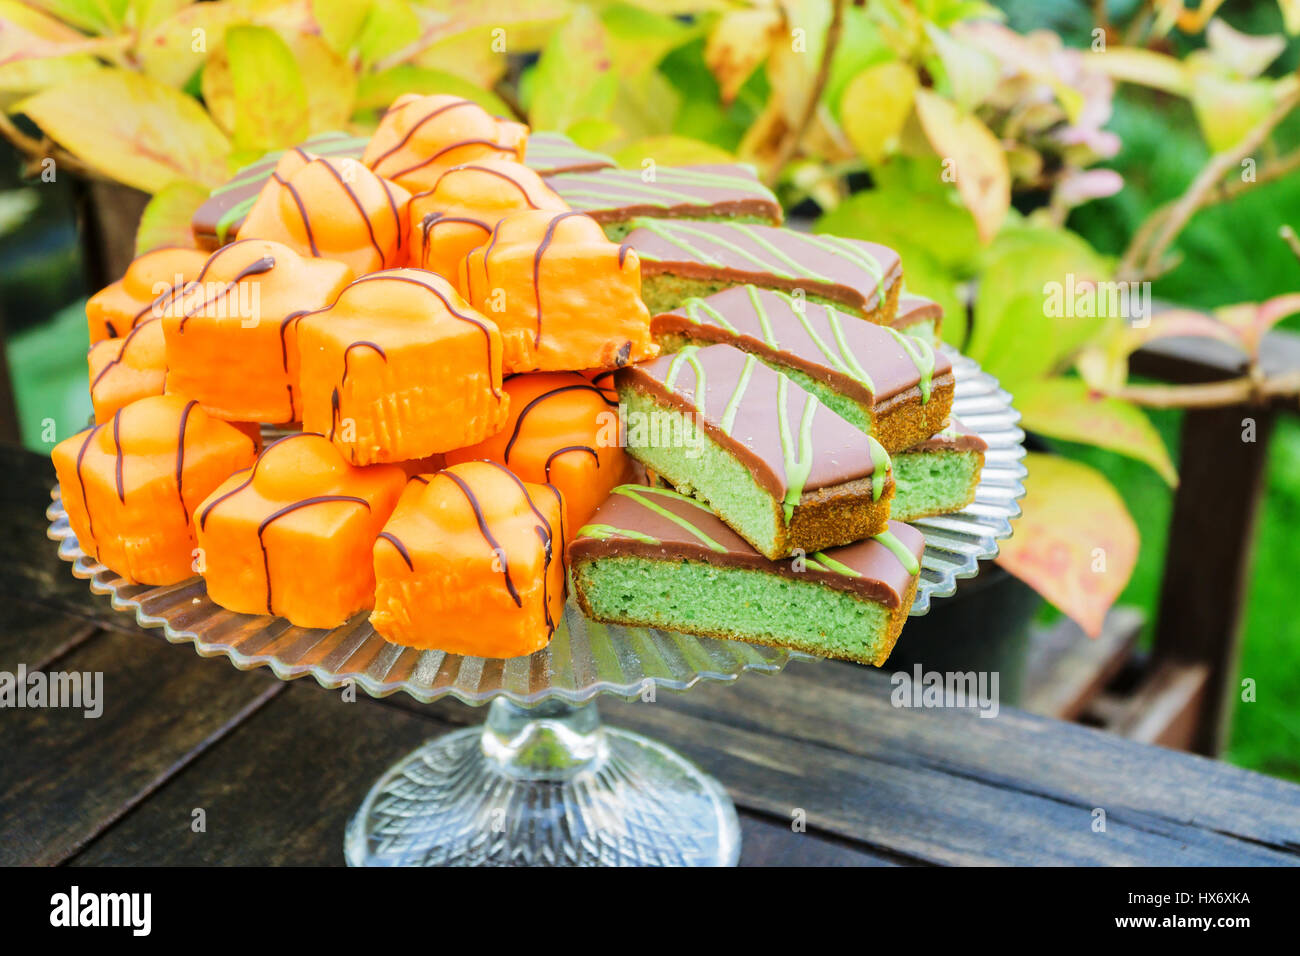 Cakes on a display stand outdoors - Stock Image